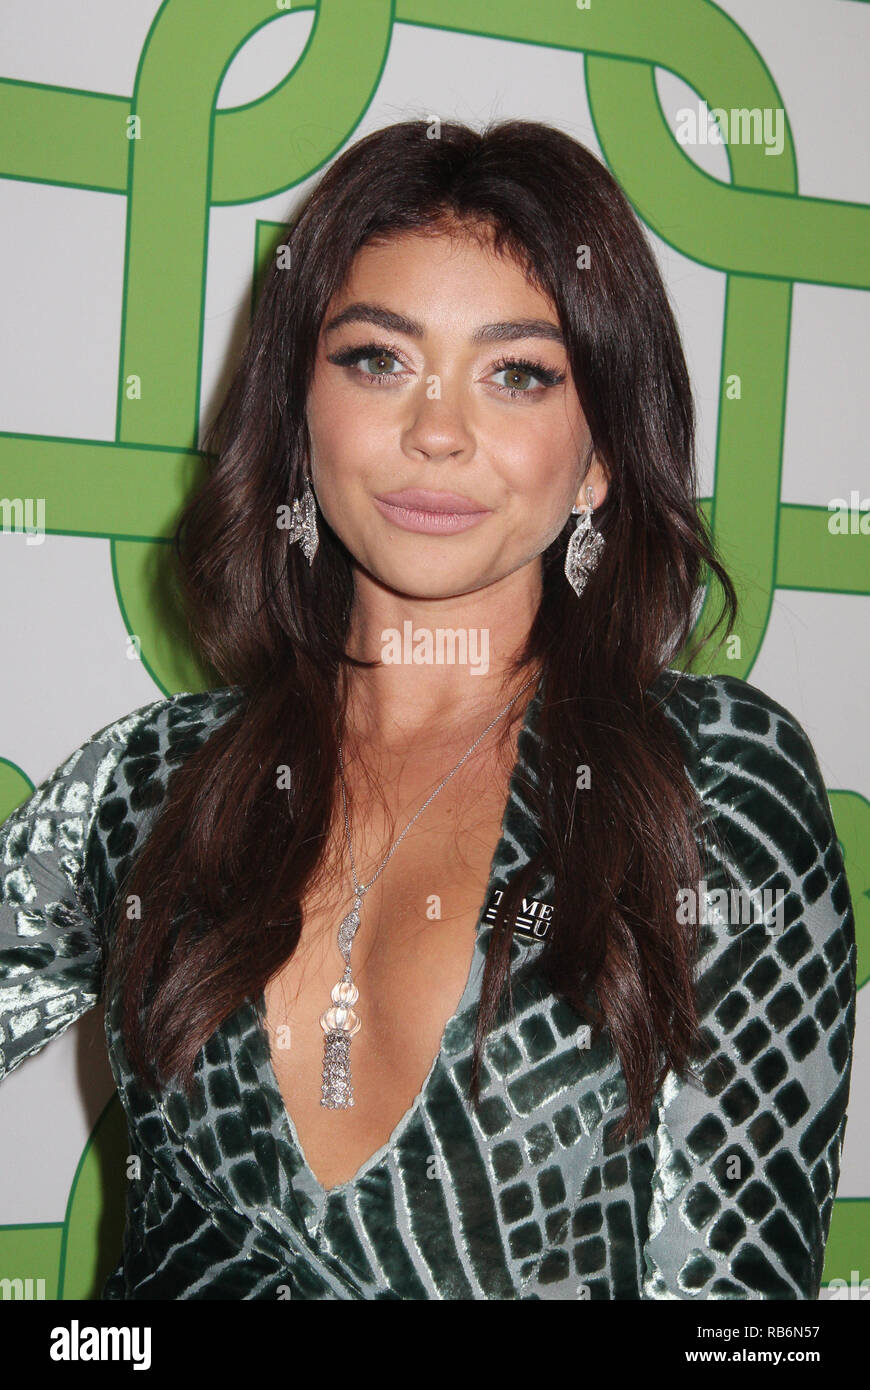 Sarah Hyland  01/06/2019 The 76th Annual Golden Globe Awards HBO After Party held at the Circa 55 Restaurant at The Beverly Hilton in Beverly Hills, CA  Photo: Cronos/Hollywood News Stock Photo